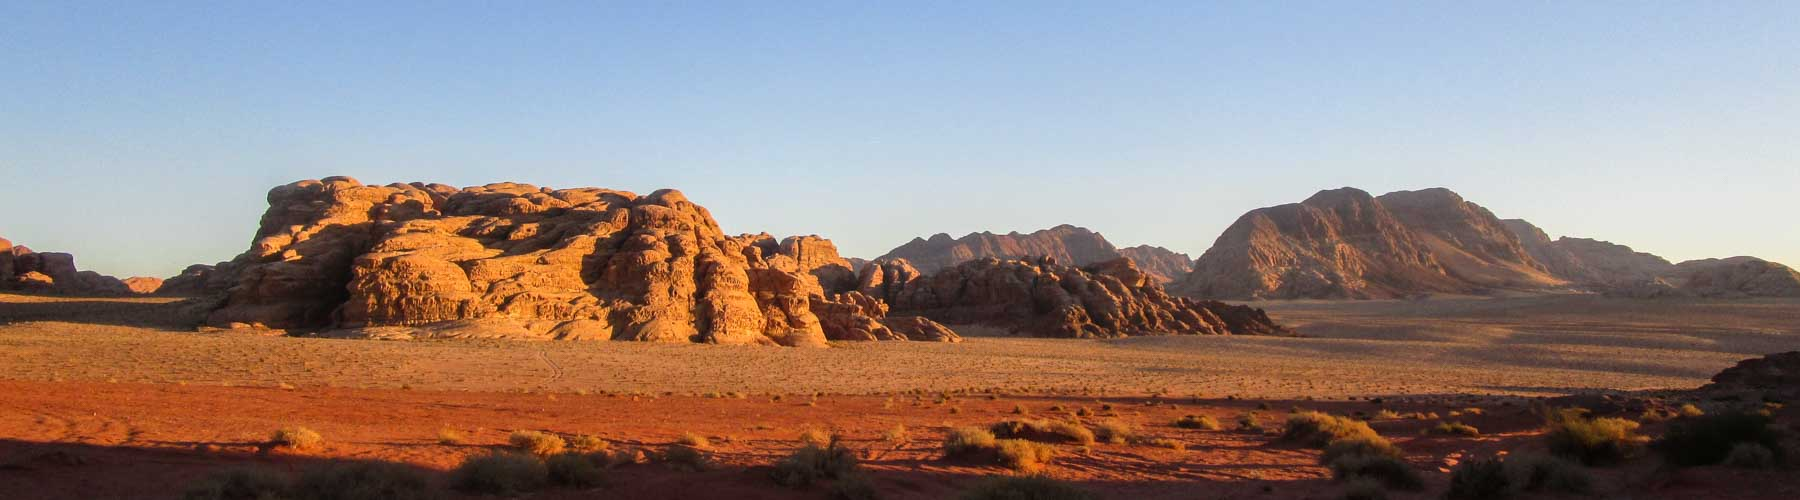 Wadi Rum's colouring at sunset time